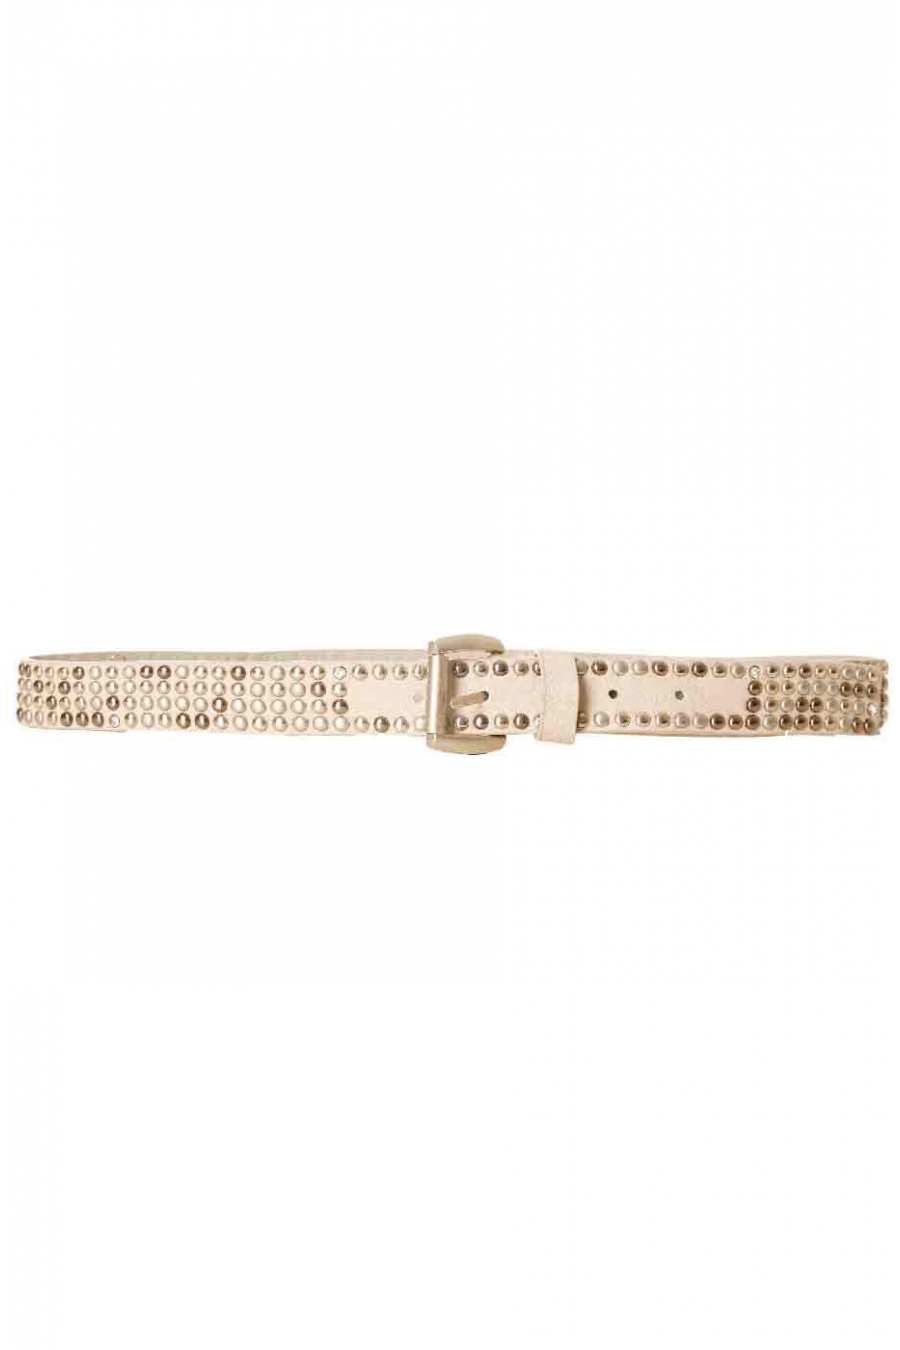 Fine taupe belt with small buckle SG-0974